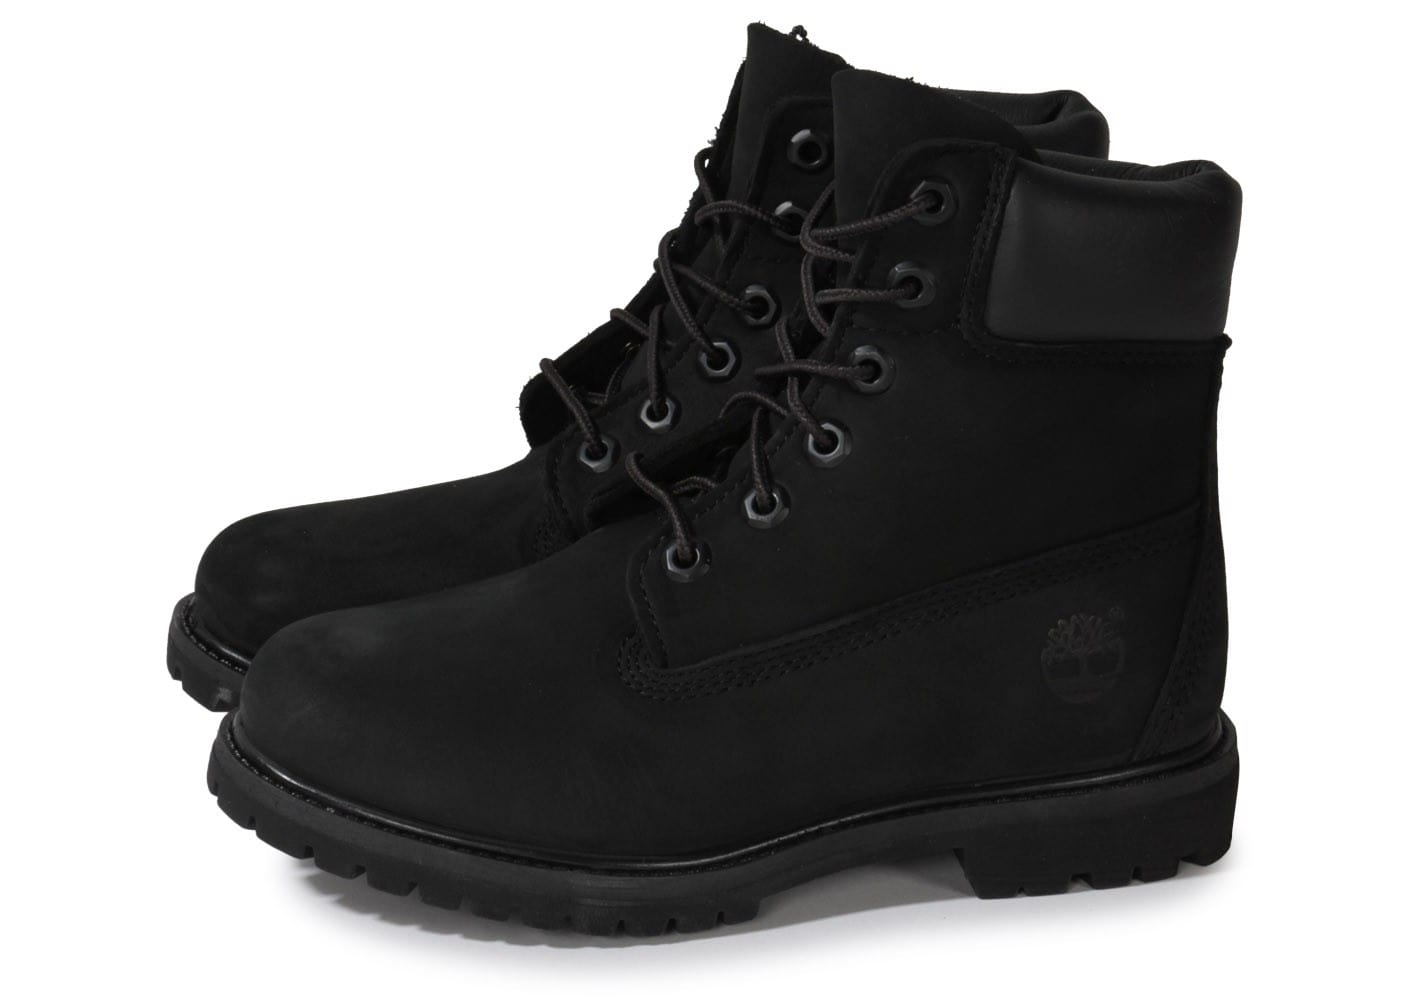 timberland 6 inch premium waterproof noire chaussures femme chausport. Black Bedroom Furniture Sets. Home Design Ideas